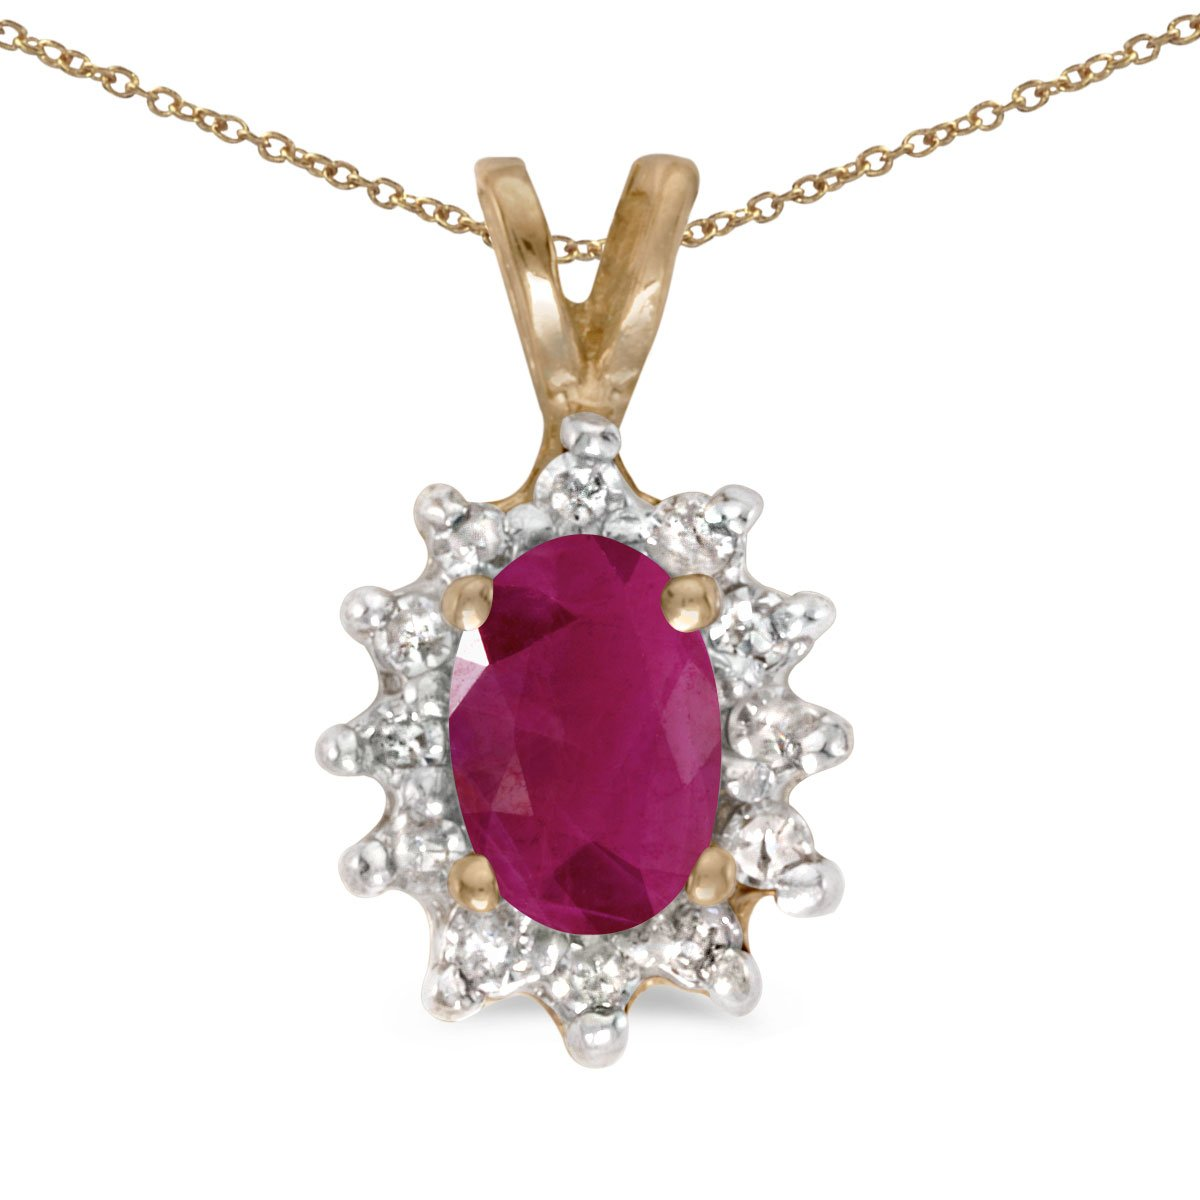 Amazon 14k yellow gold oval ruby and diamond pendant with 18 amazon 14k yellow gold oval ruby and diamond pendant with 18 chain ruby necklace jewelry aloadofball Images